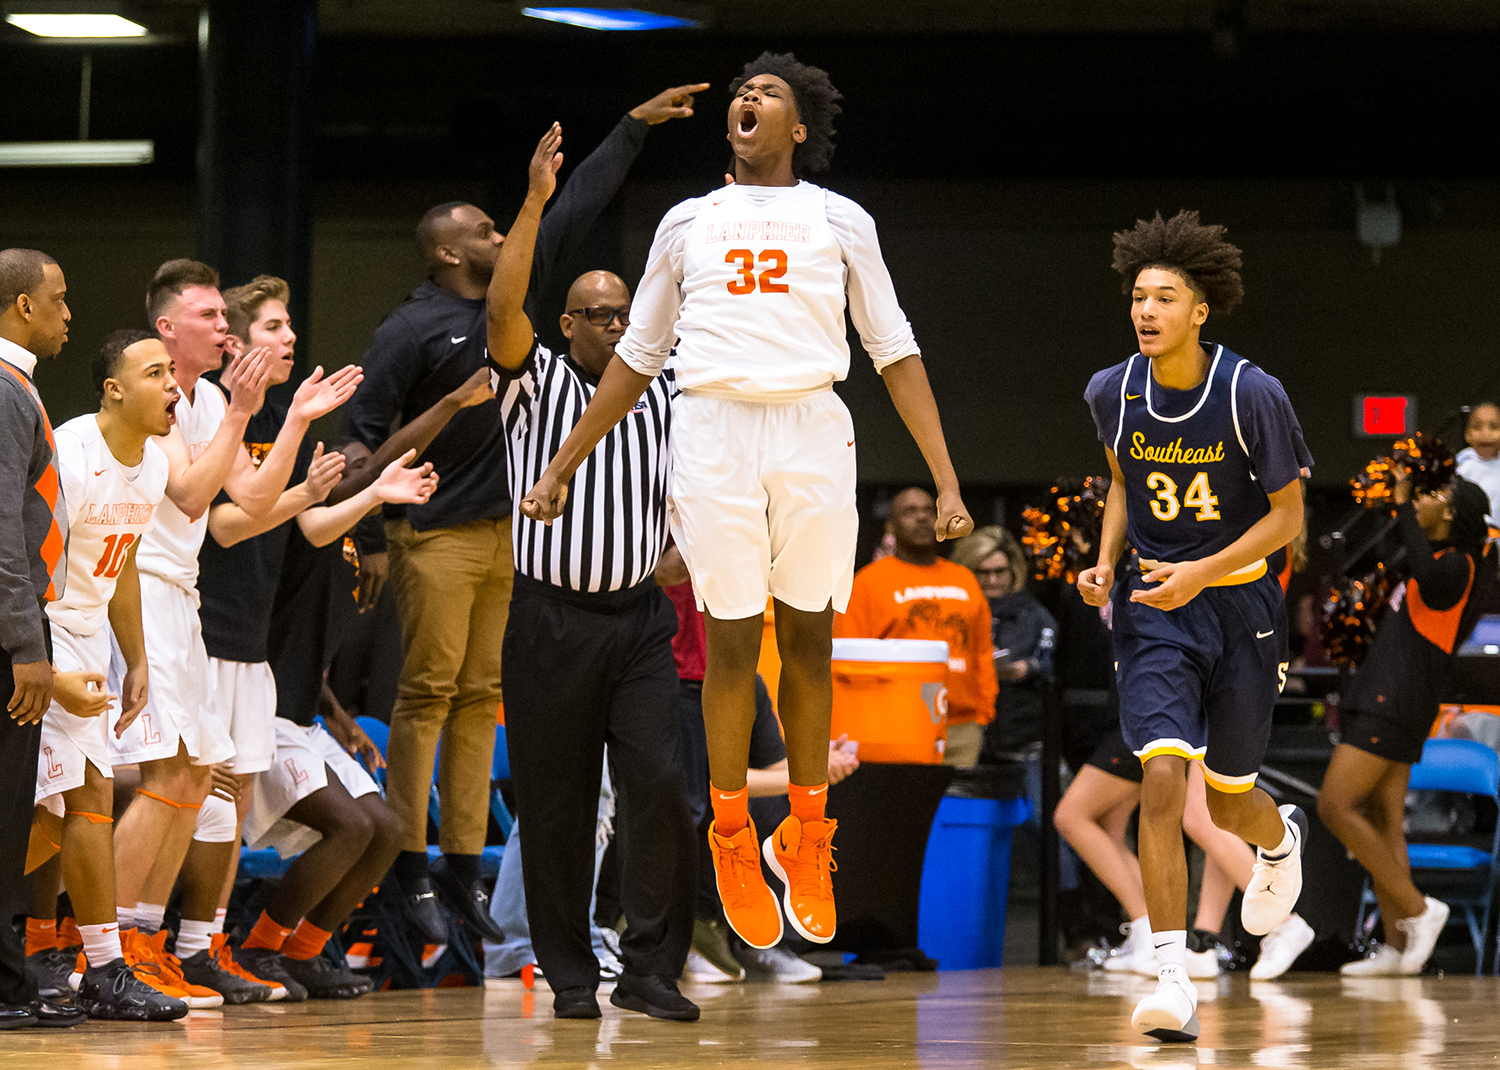 Lanphier's KJ Debrick (32) reacts after hitting a 3-pointer against Southeast in the third quarter on opening night of the Boys City Tournament at the Bank of Springfield Center, Wednesday, Jan. 16, 2019, in Springfield, Ill. [Justin L. Fowler/The State Journal-Register]